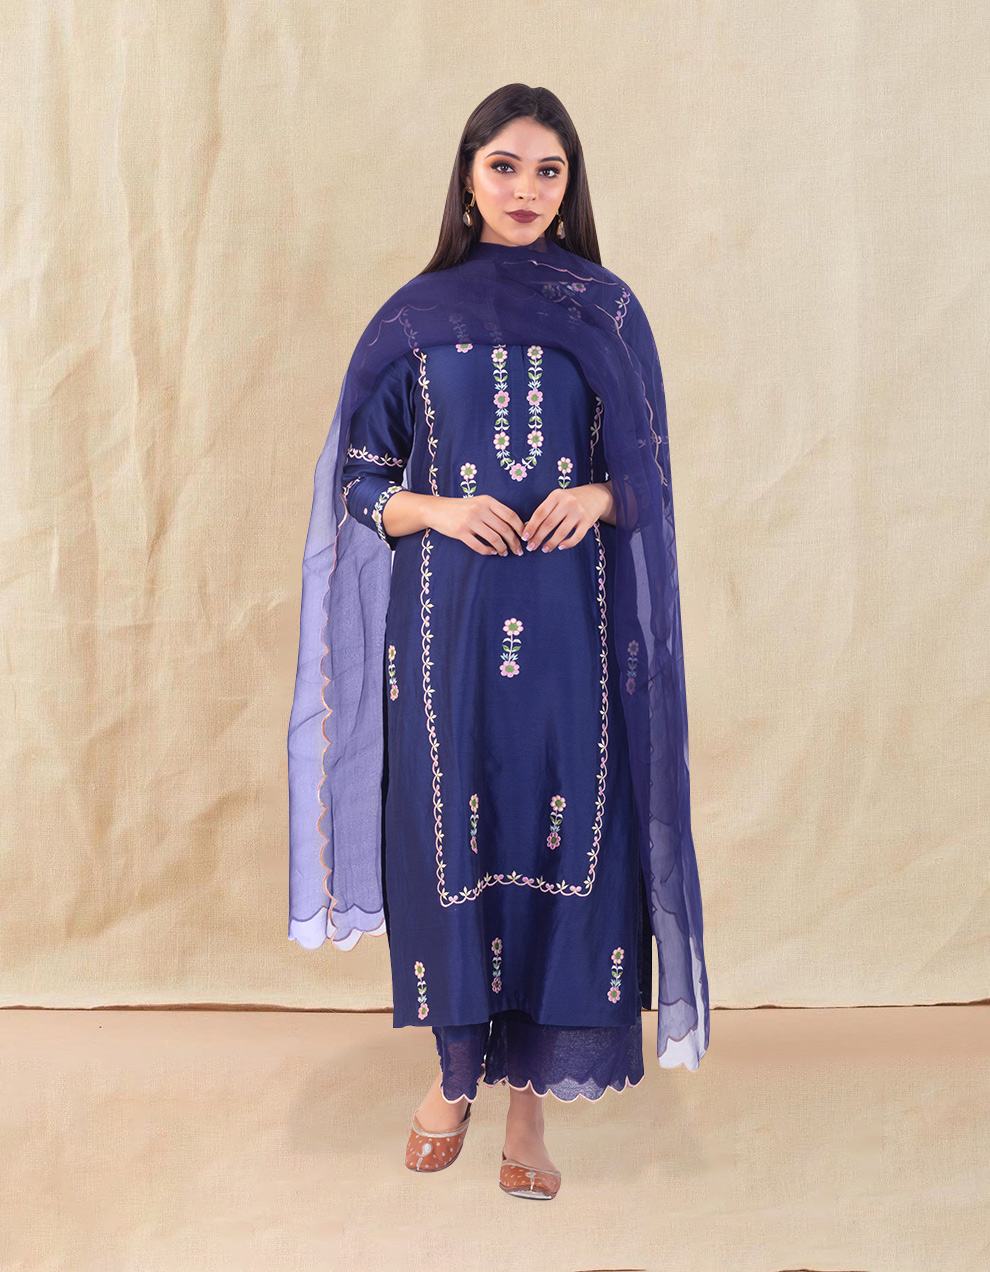 Blue embroidered chanderi silk kurta for sale in India